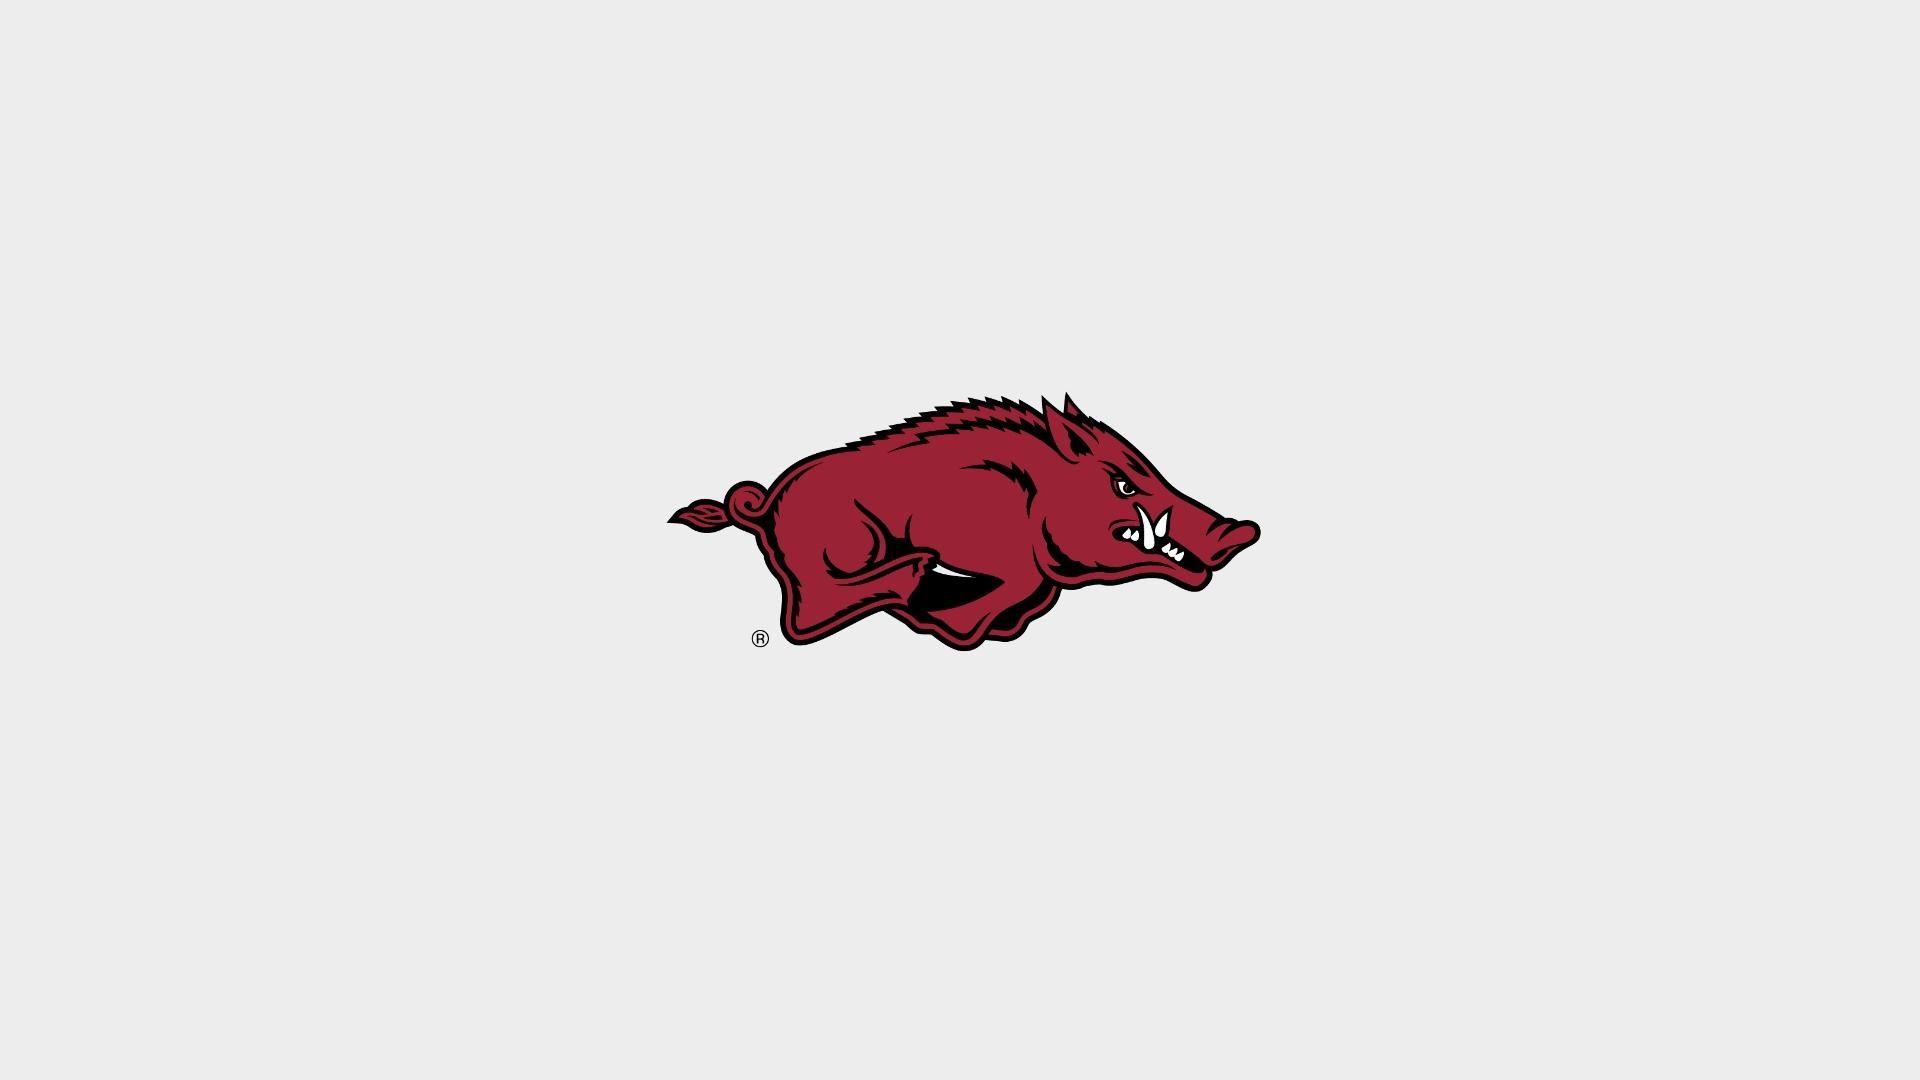 1920x1080 wallpaper.wiki-Arkansas-Razorbacks-Logo-Wallpaper--PIC-